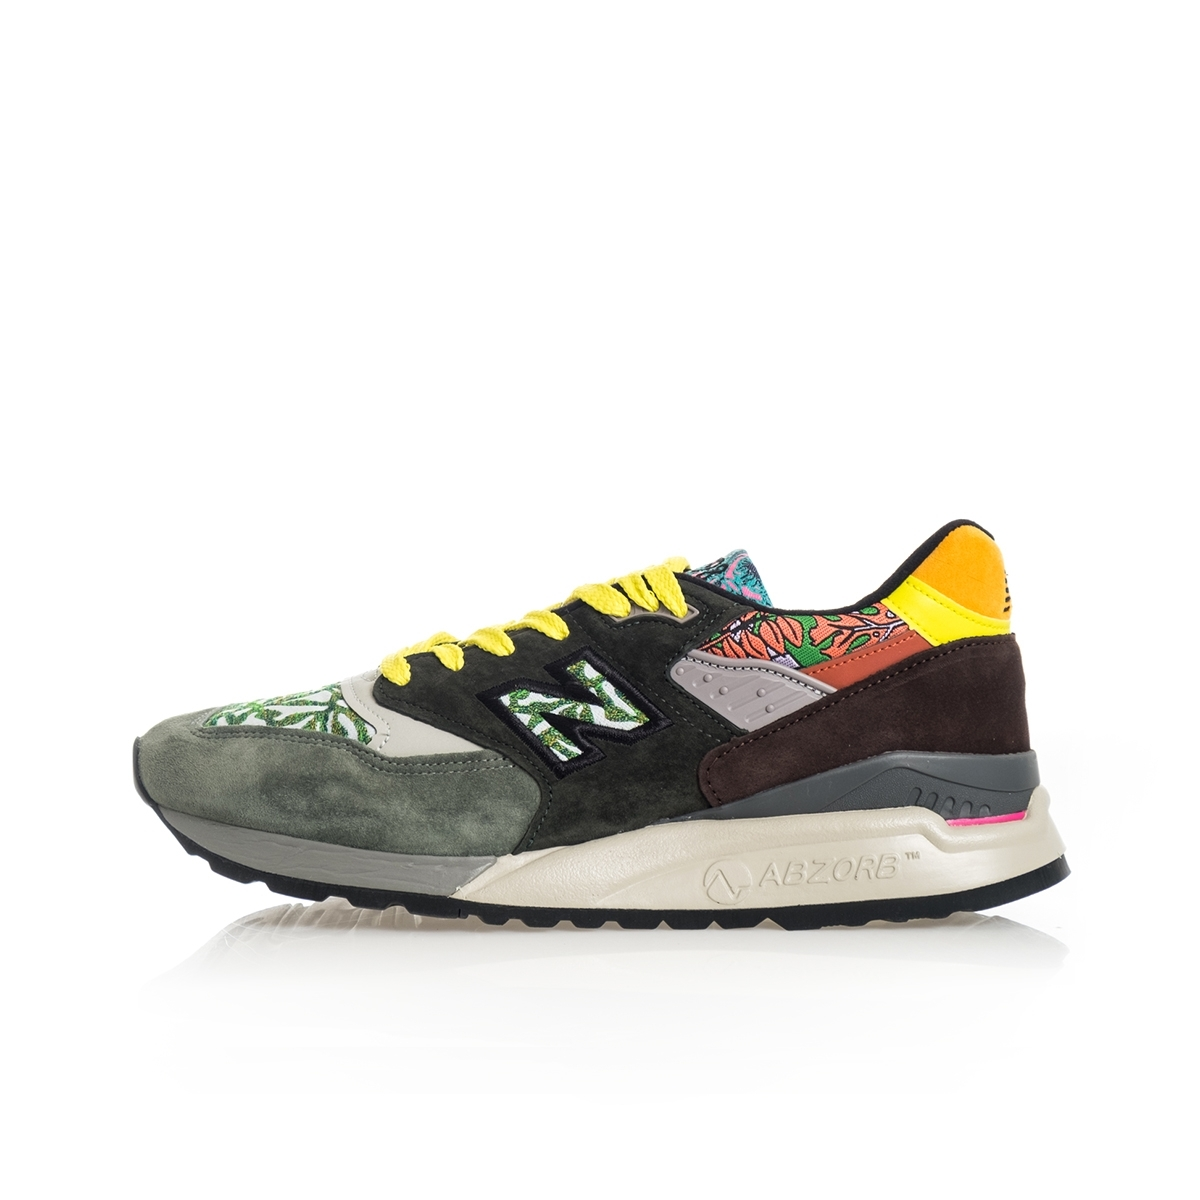 SNEAKERS UOMO NEW BALANCE LIFESTYLE 998 M998AWK MADE IN USA GREEN